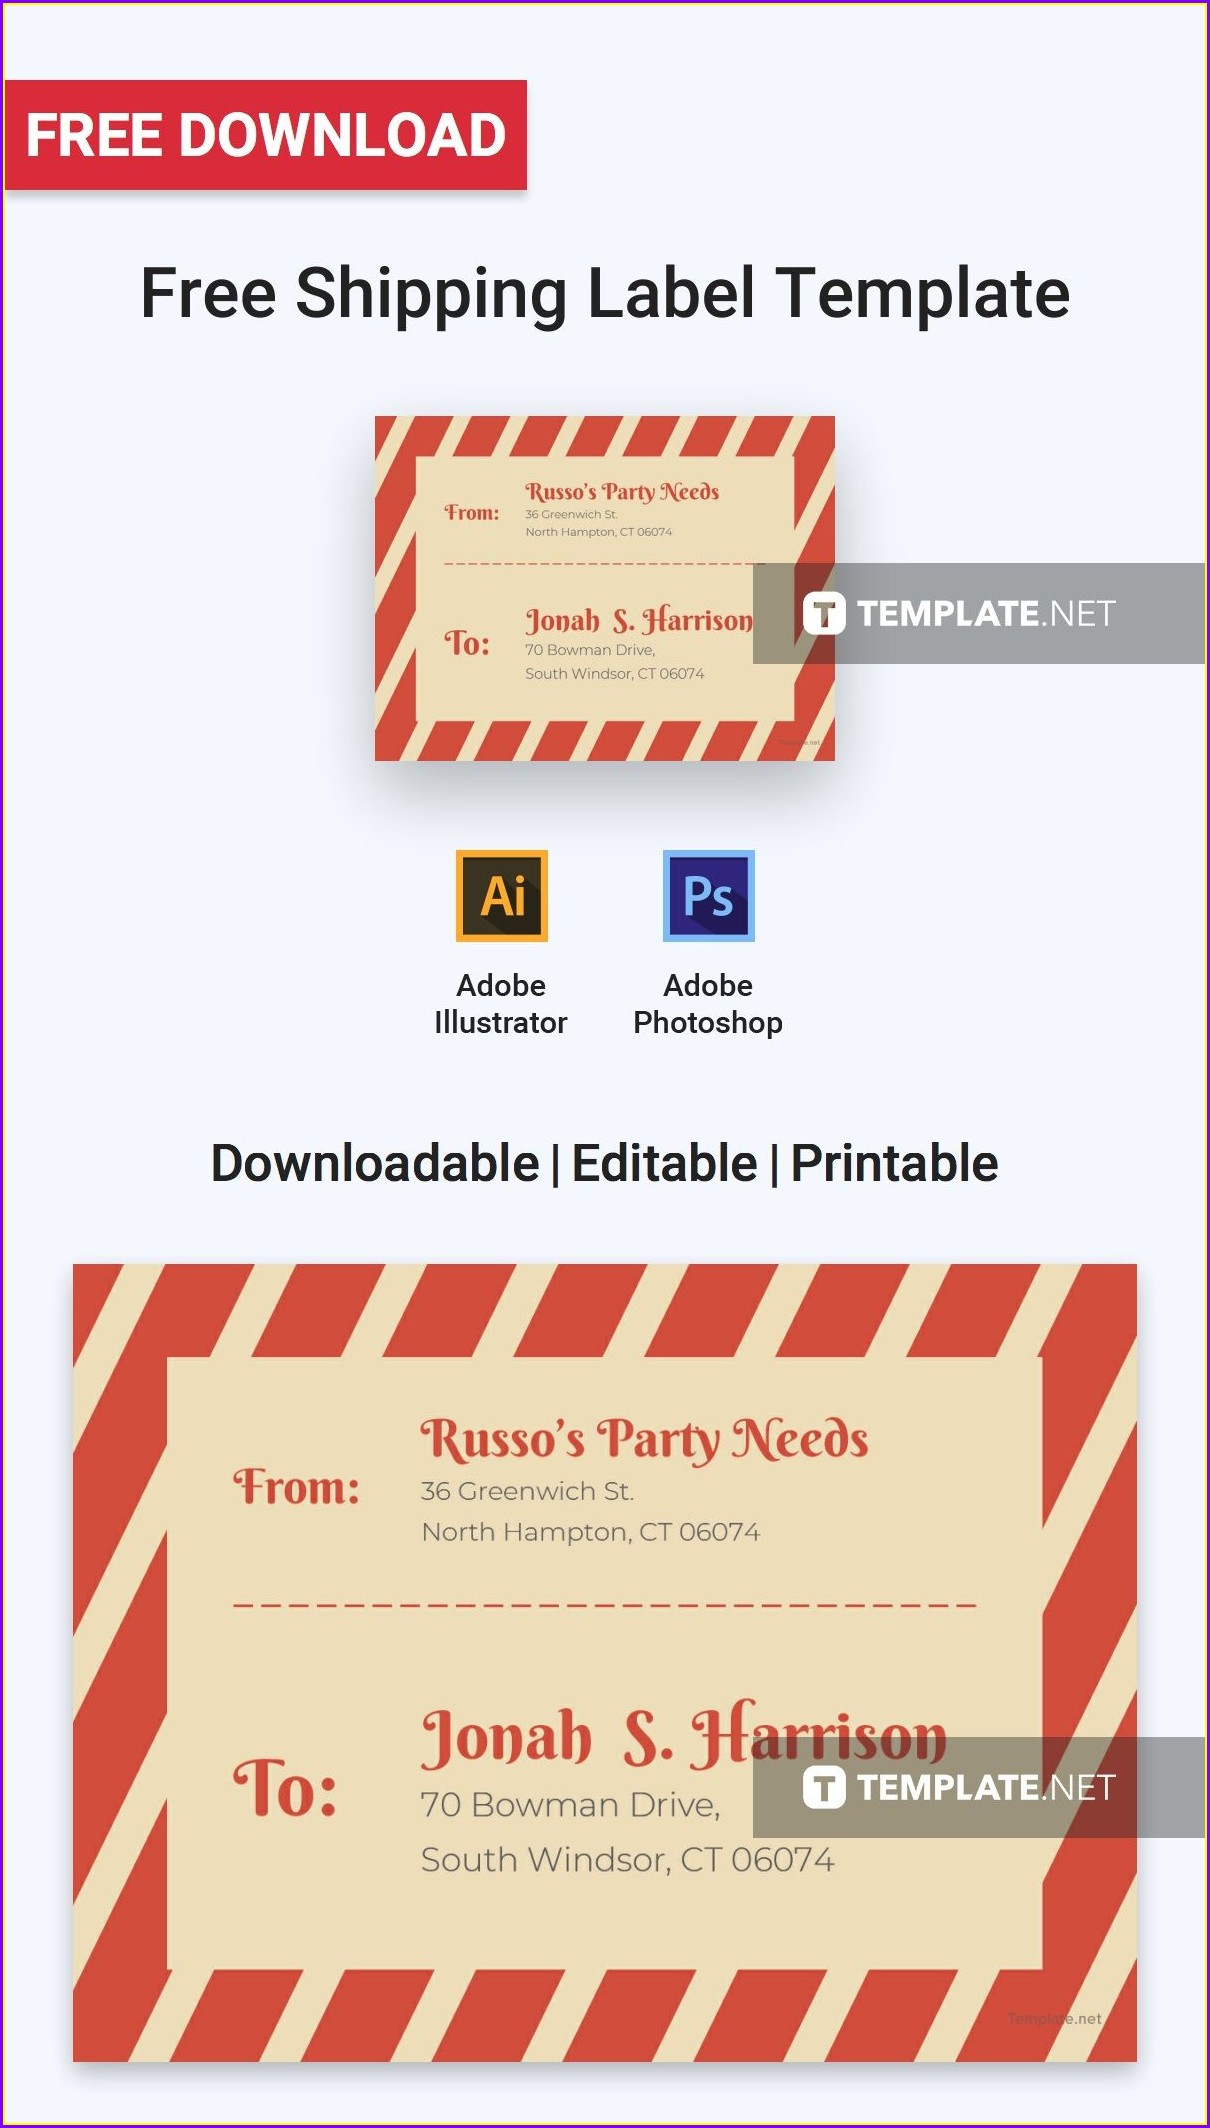 Free Shipping Label Templates